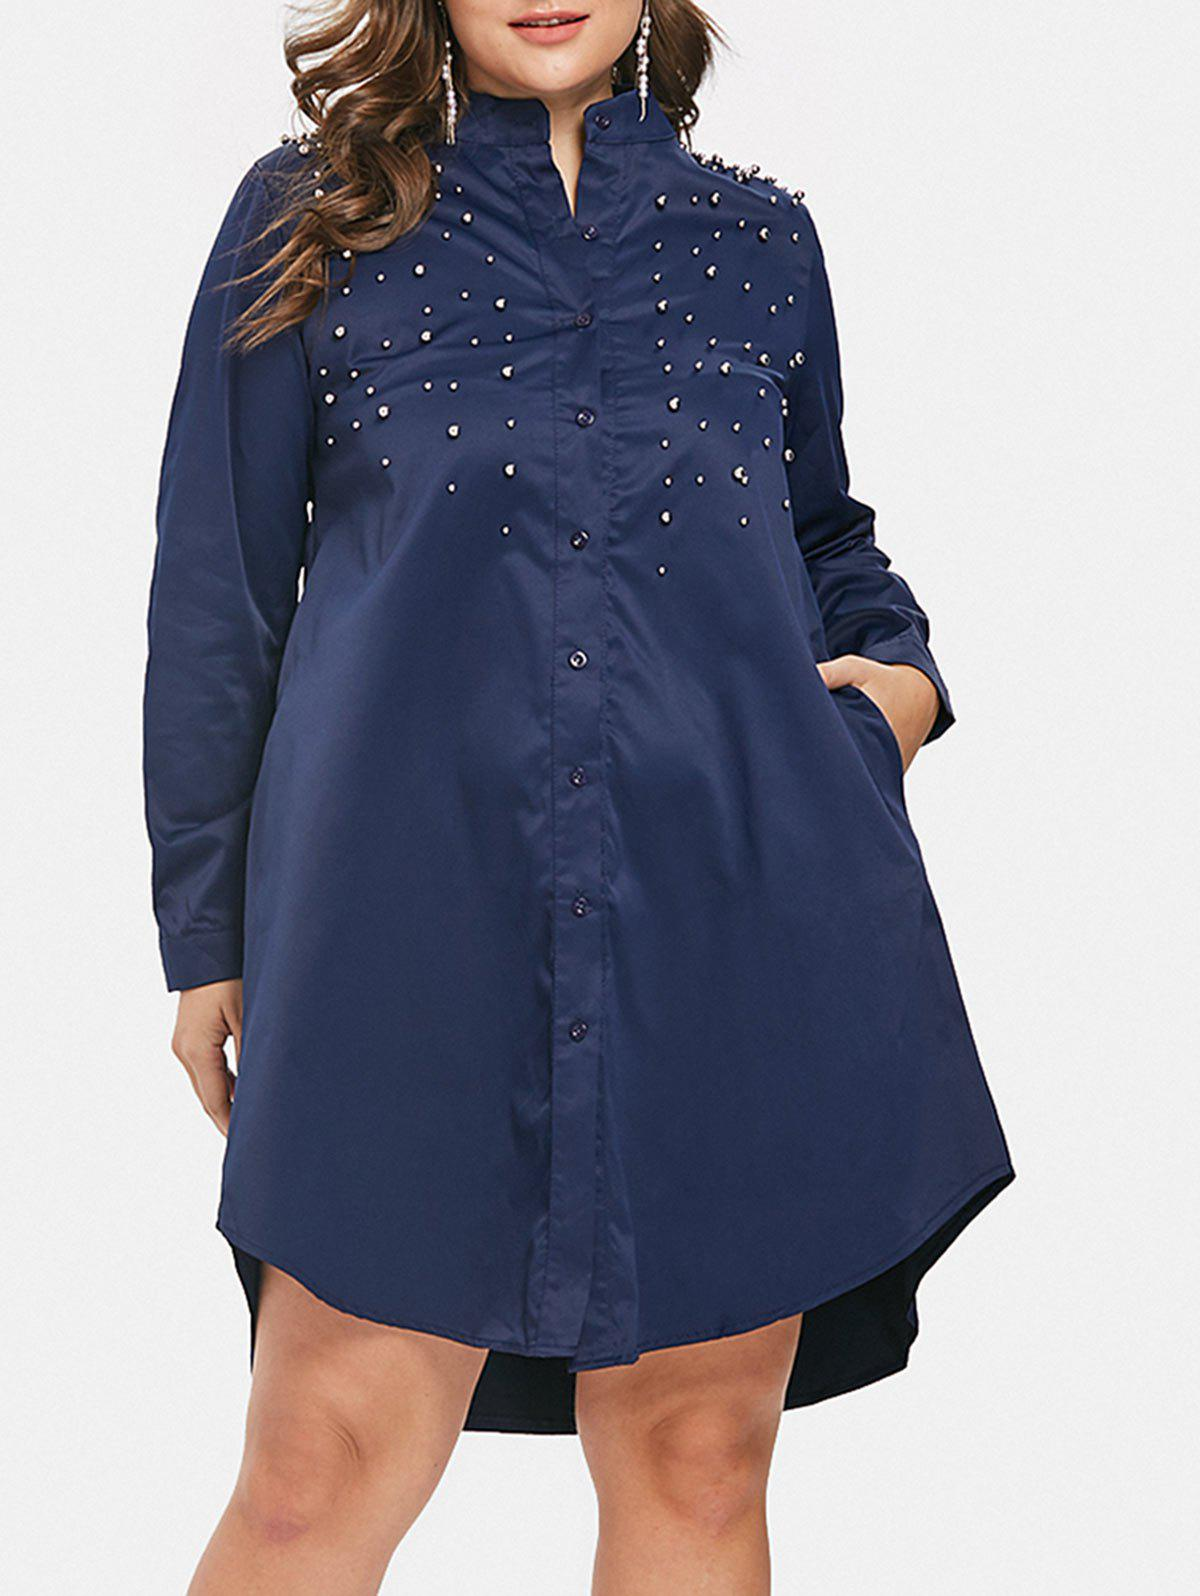 Beaded Embellished Plus Size Shirt Dress, Midnight blue